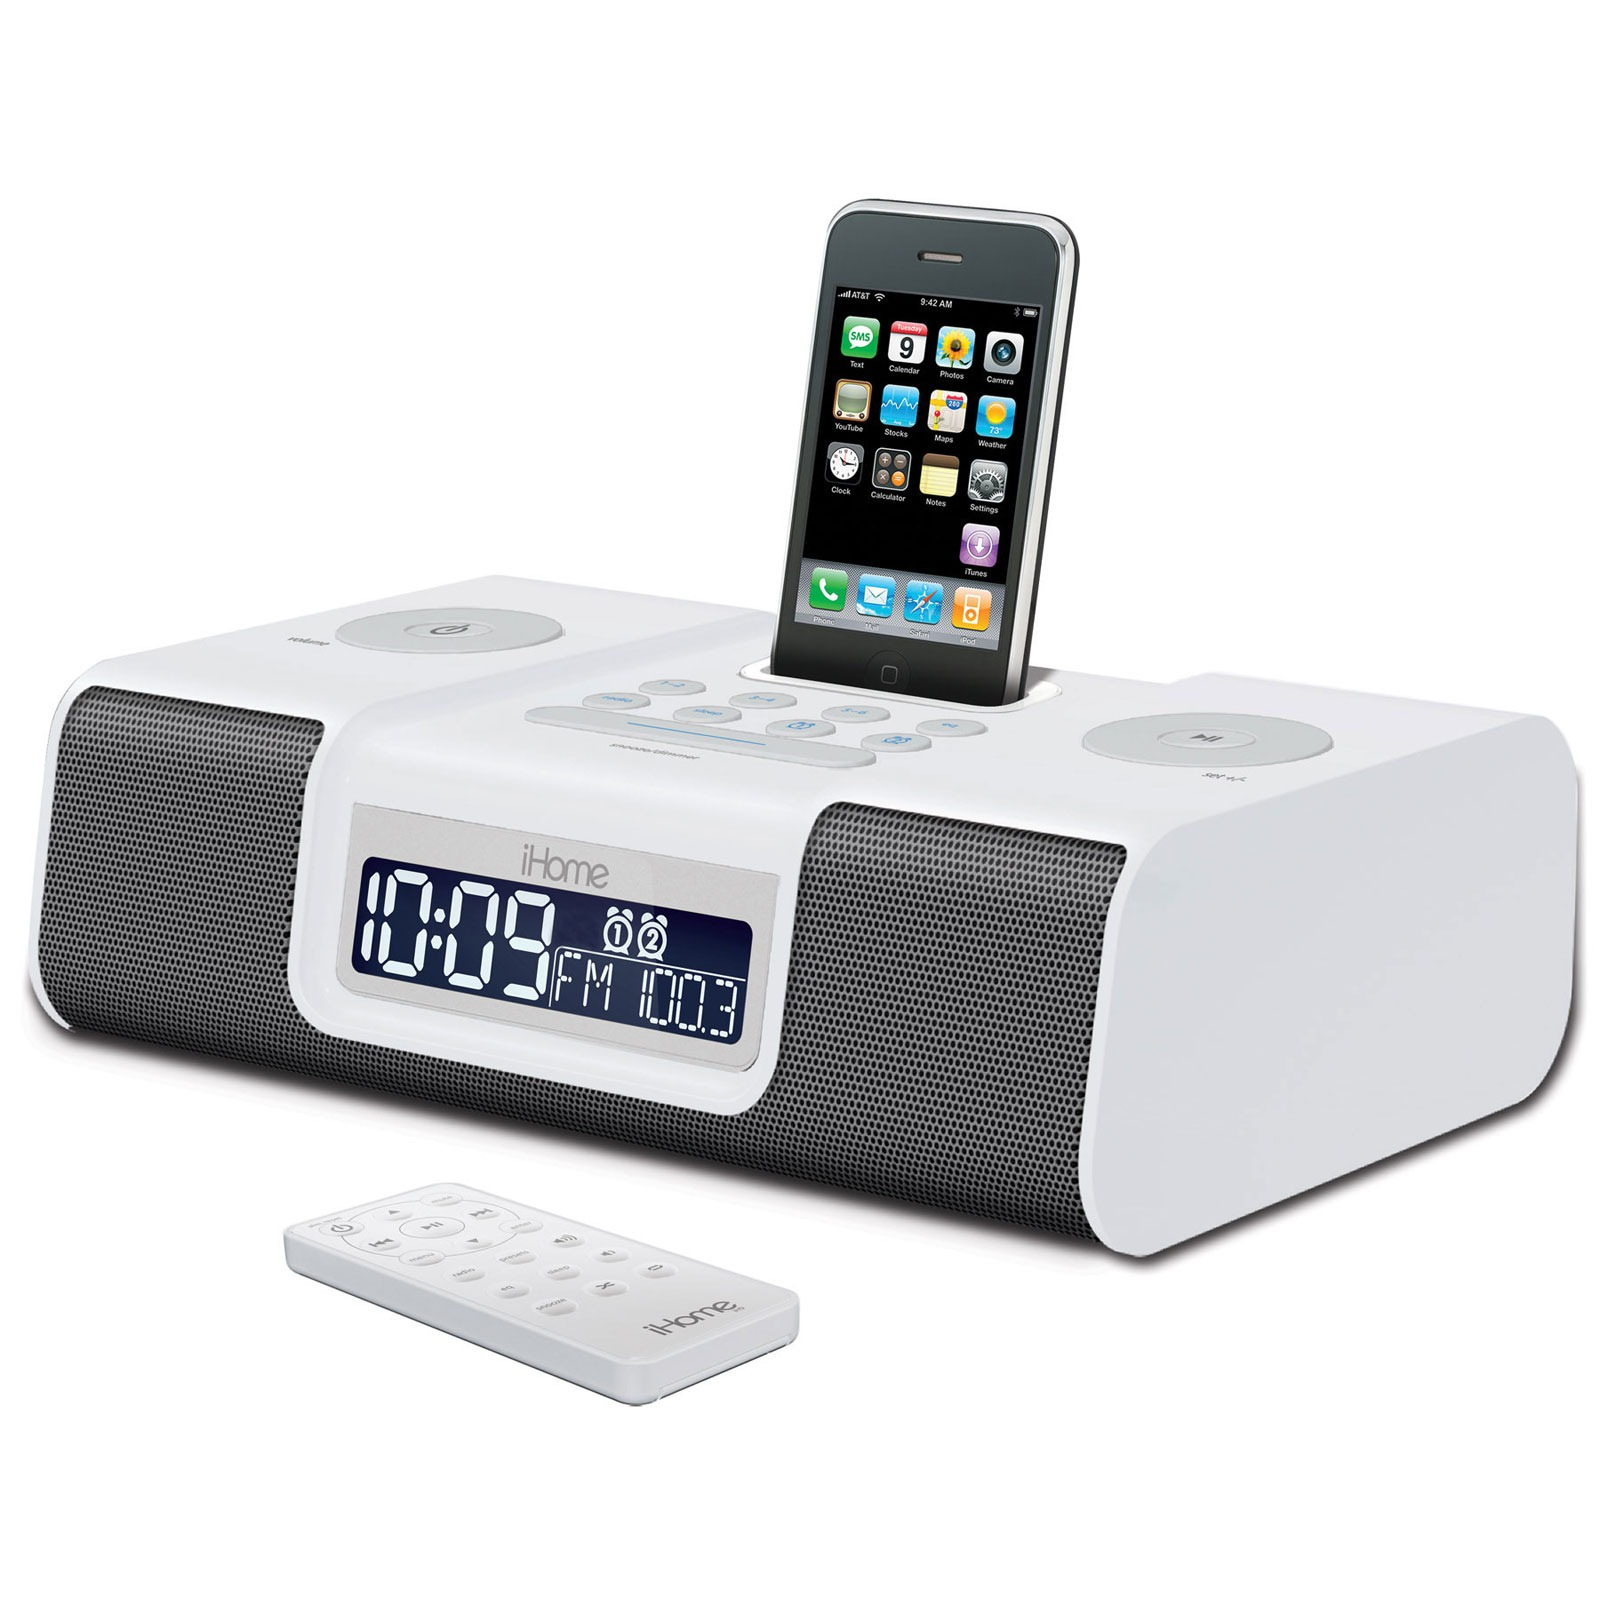 ihome ip9 dock enceinte bluetooth ihome sur ldlc. Black Bedroom Furniture Sets. Home Design Ideas